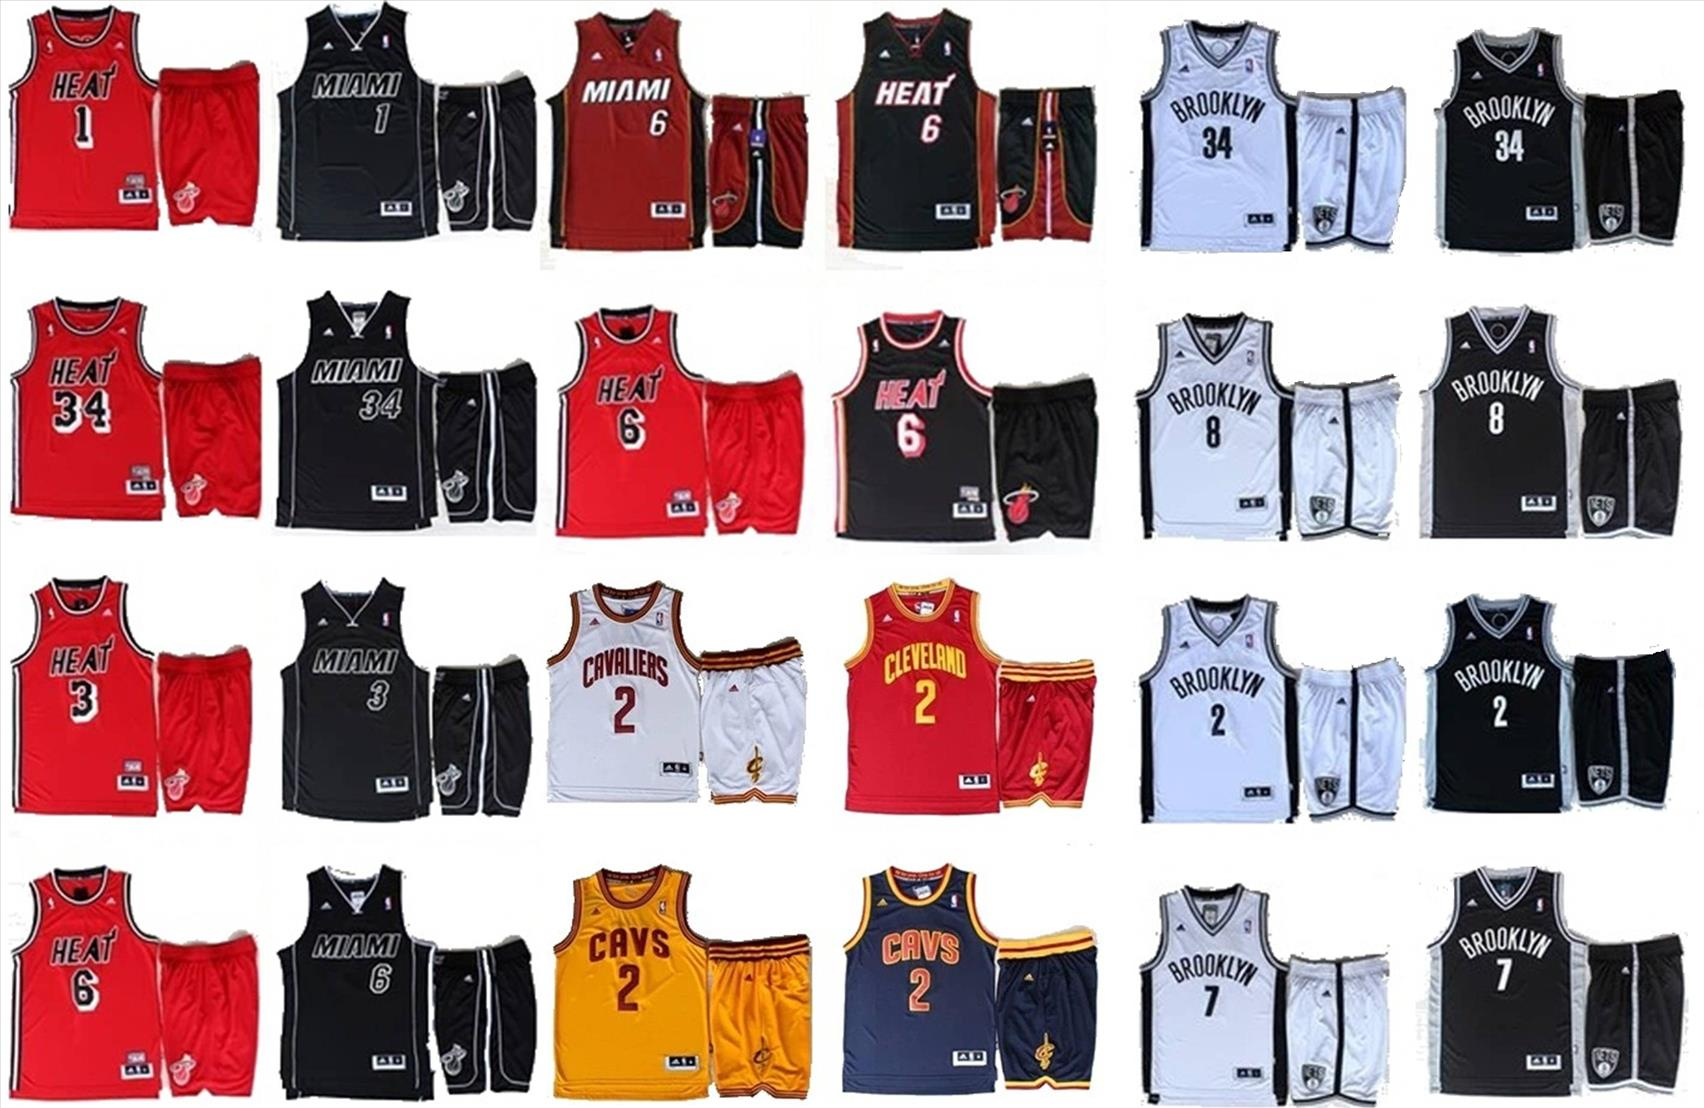 NBA Basketball Jersey with Shorts (end 4/14/2018 3:09 AM)